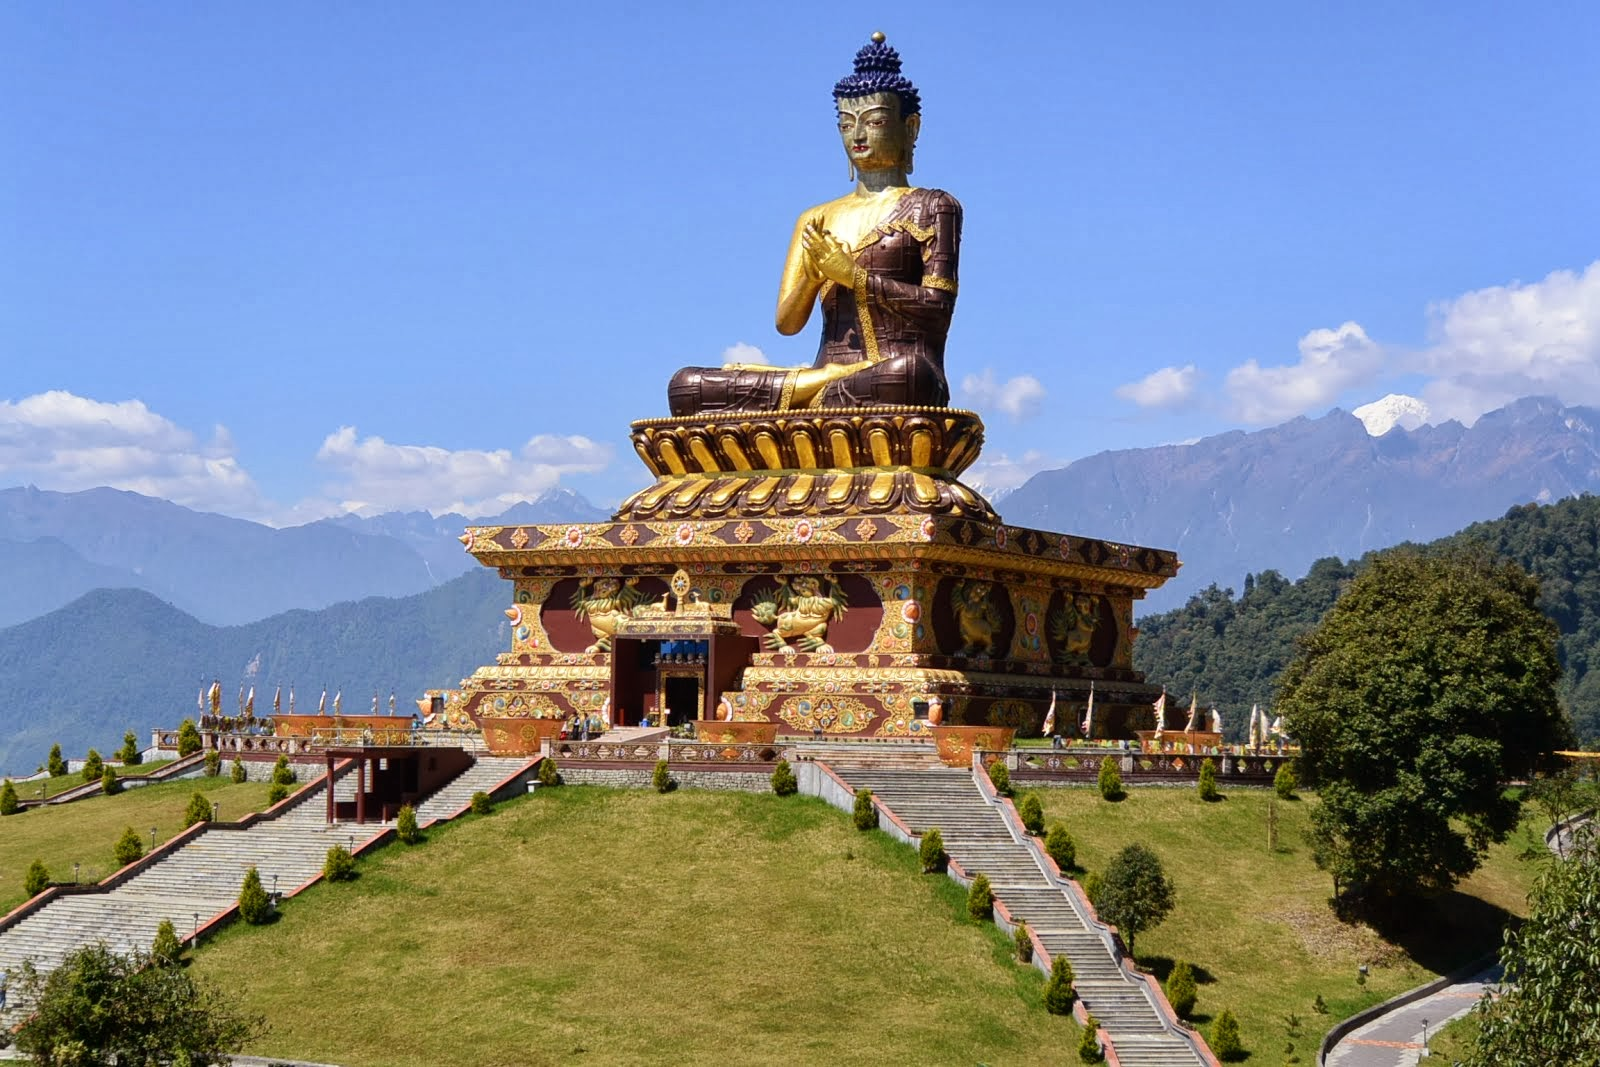 Sikkim - The Land of Sleeping Buddha (May 06 Days; # 316)